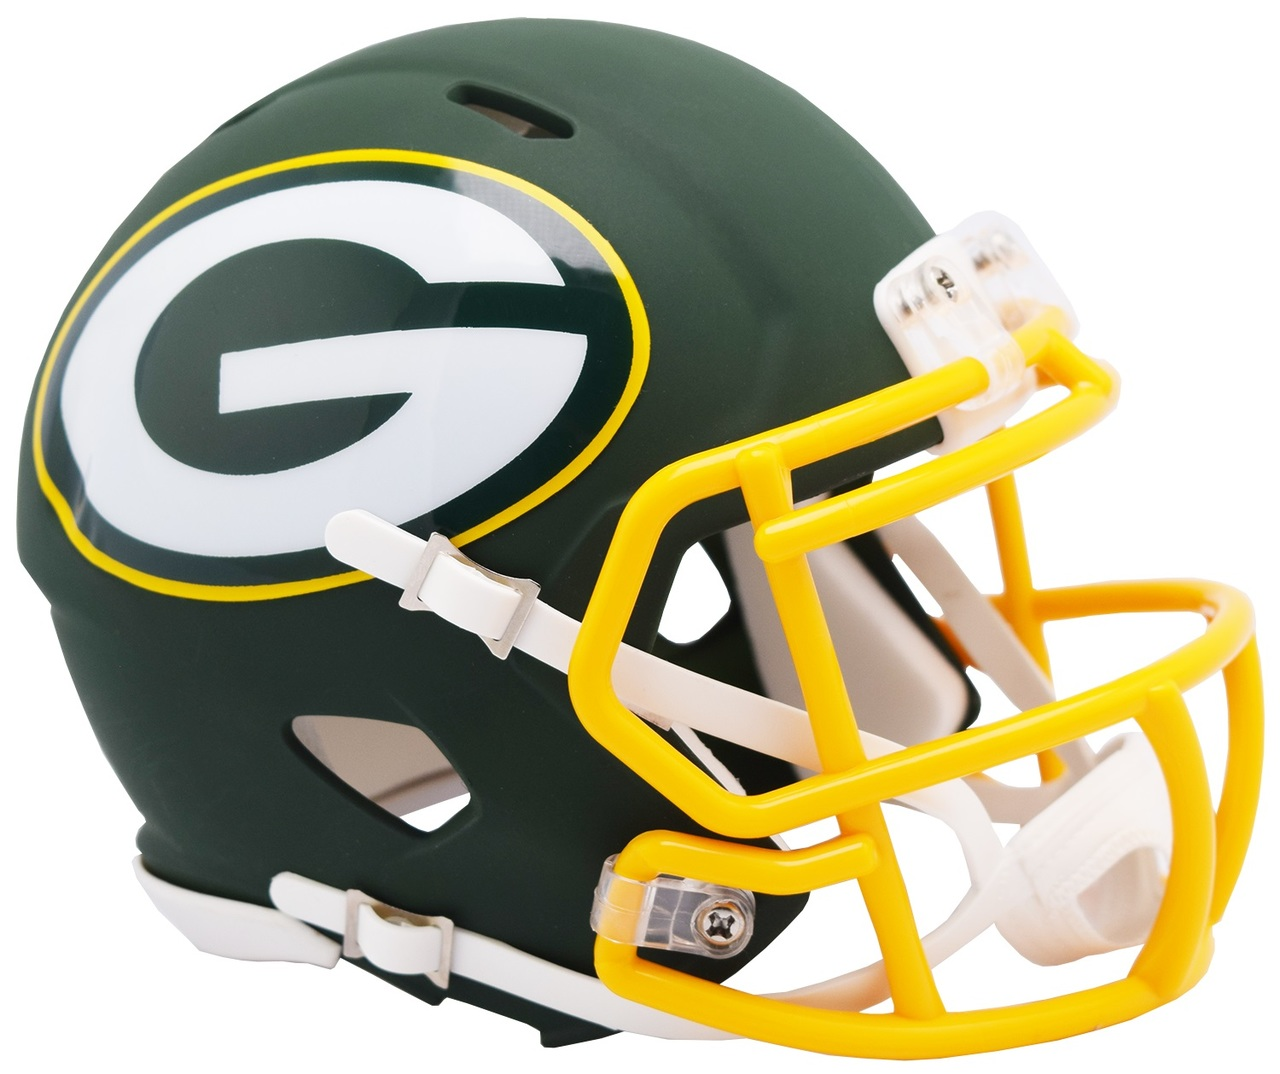 Riddell Green Bay Packers AMP Alternate Speed Mini Football Helmet.